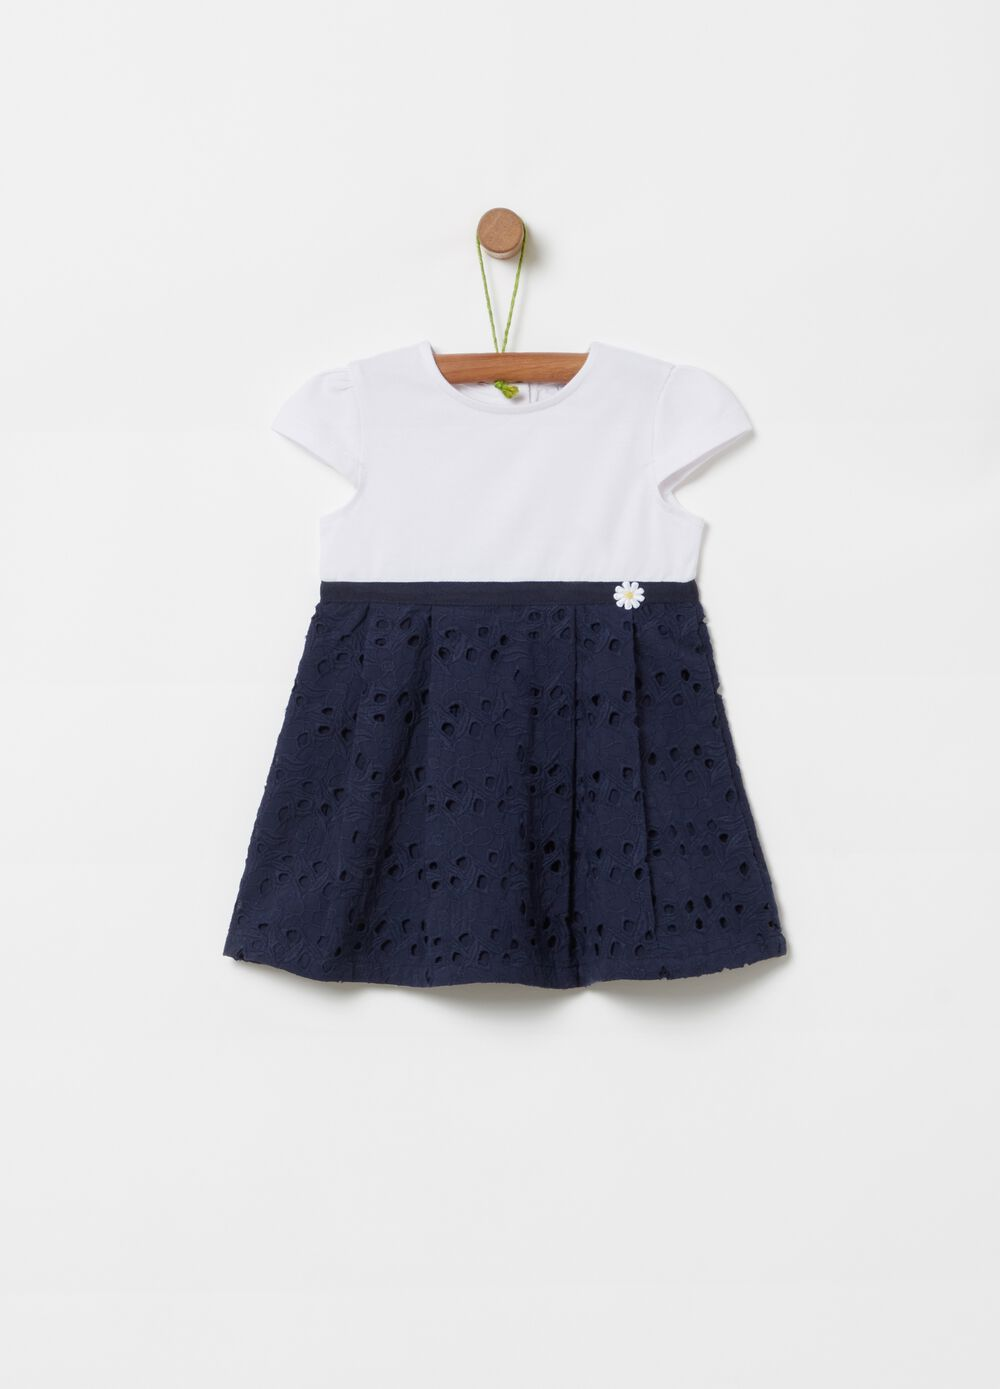 Two-tone dress with daisy